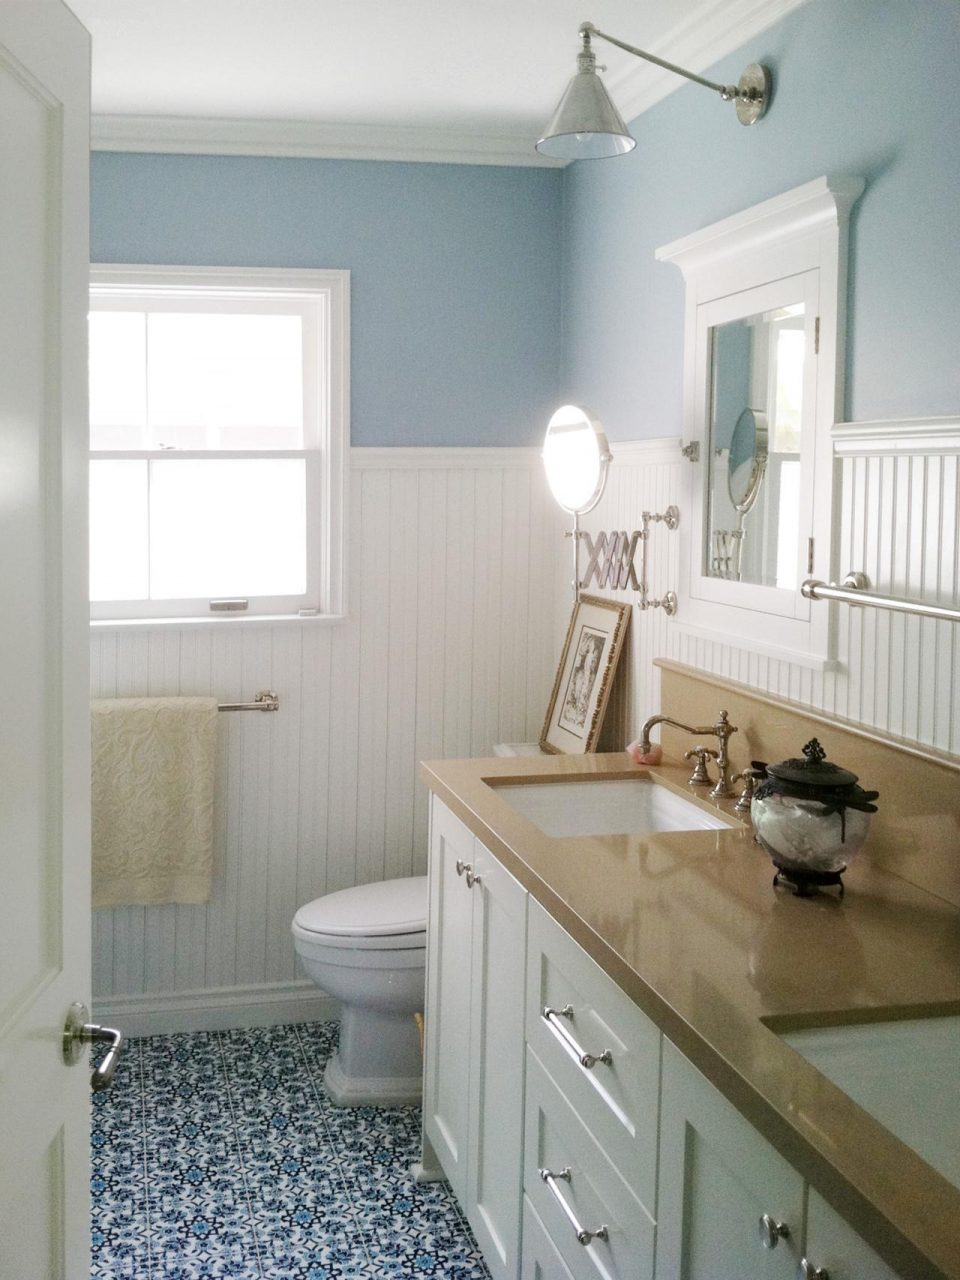 Tile Style Coastal Bathroom Escape Fireclay Tile